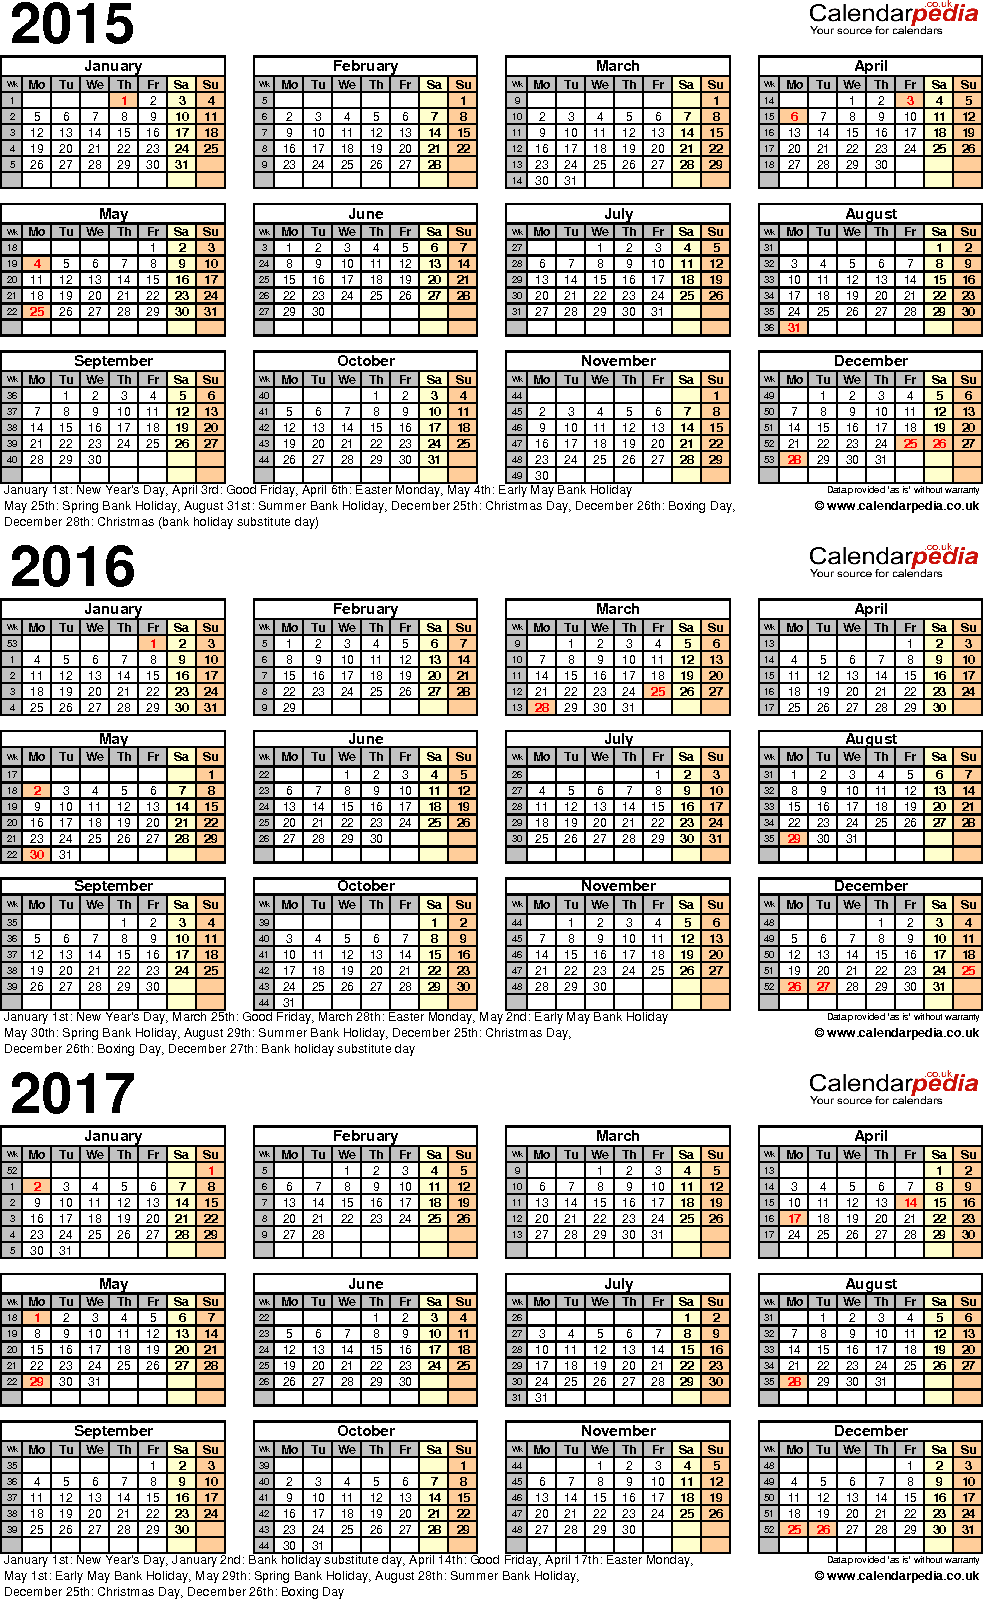 Download Template 4: PDF template for three year calendar 2015-2017 (portrait orientation, 1 page, A4)